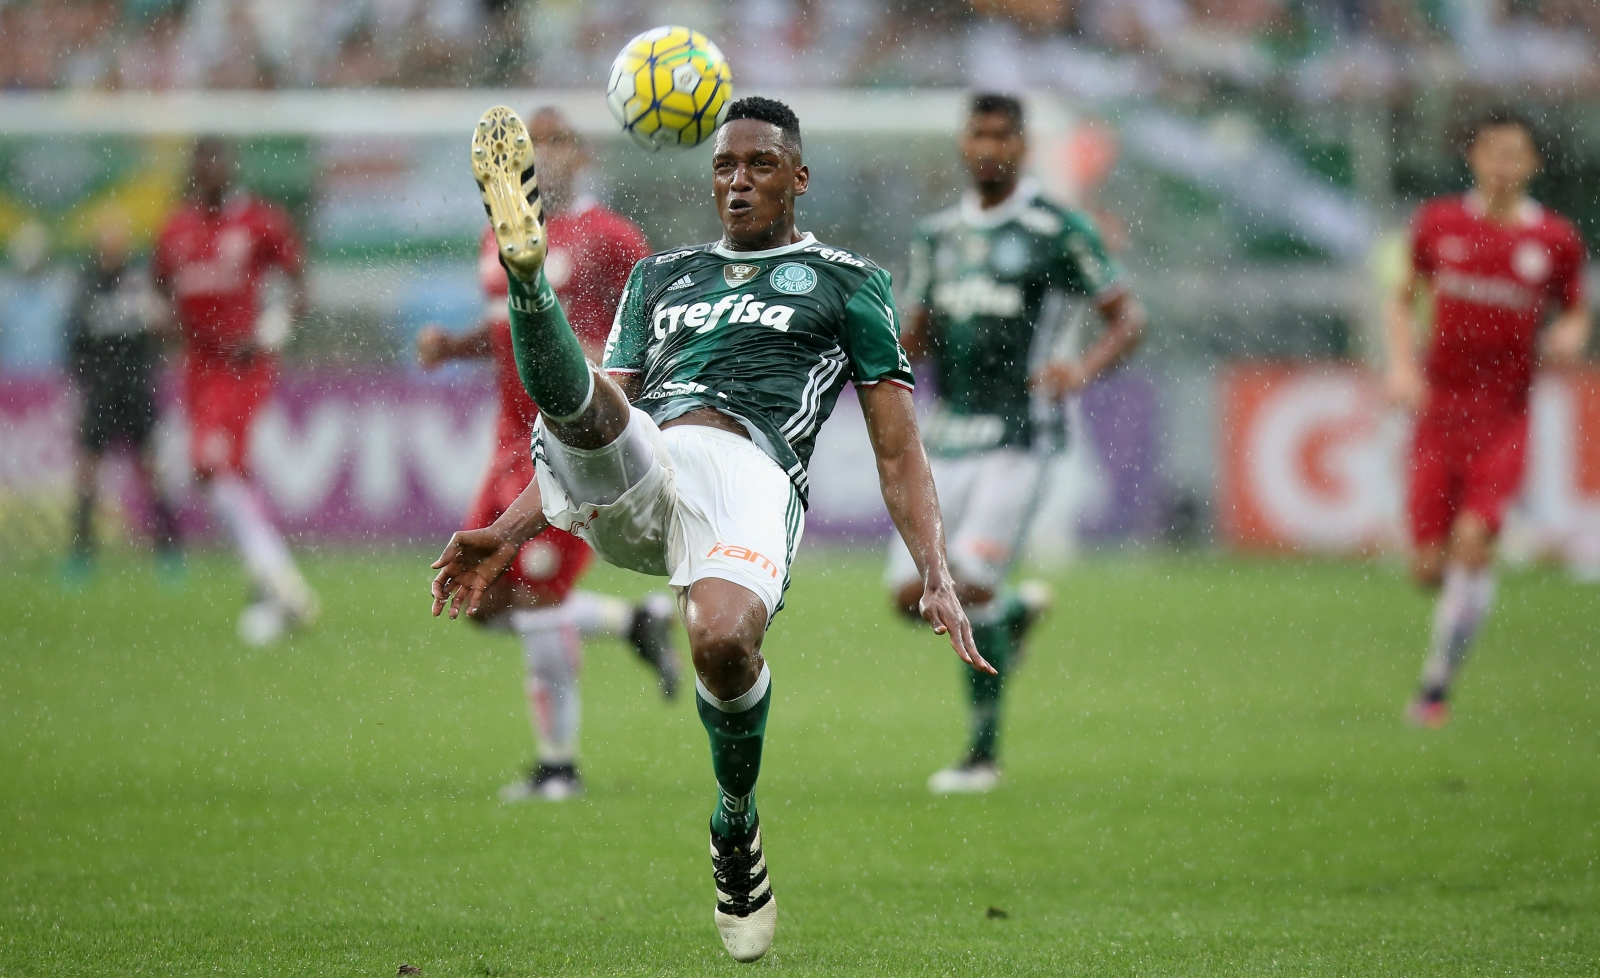 Yerry Mina to Travel to Barcelona to Complete Transfer From Palmeiras